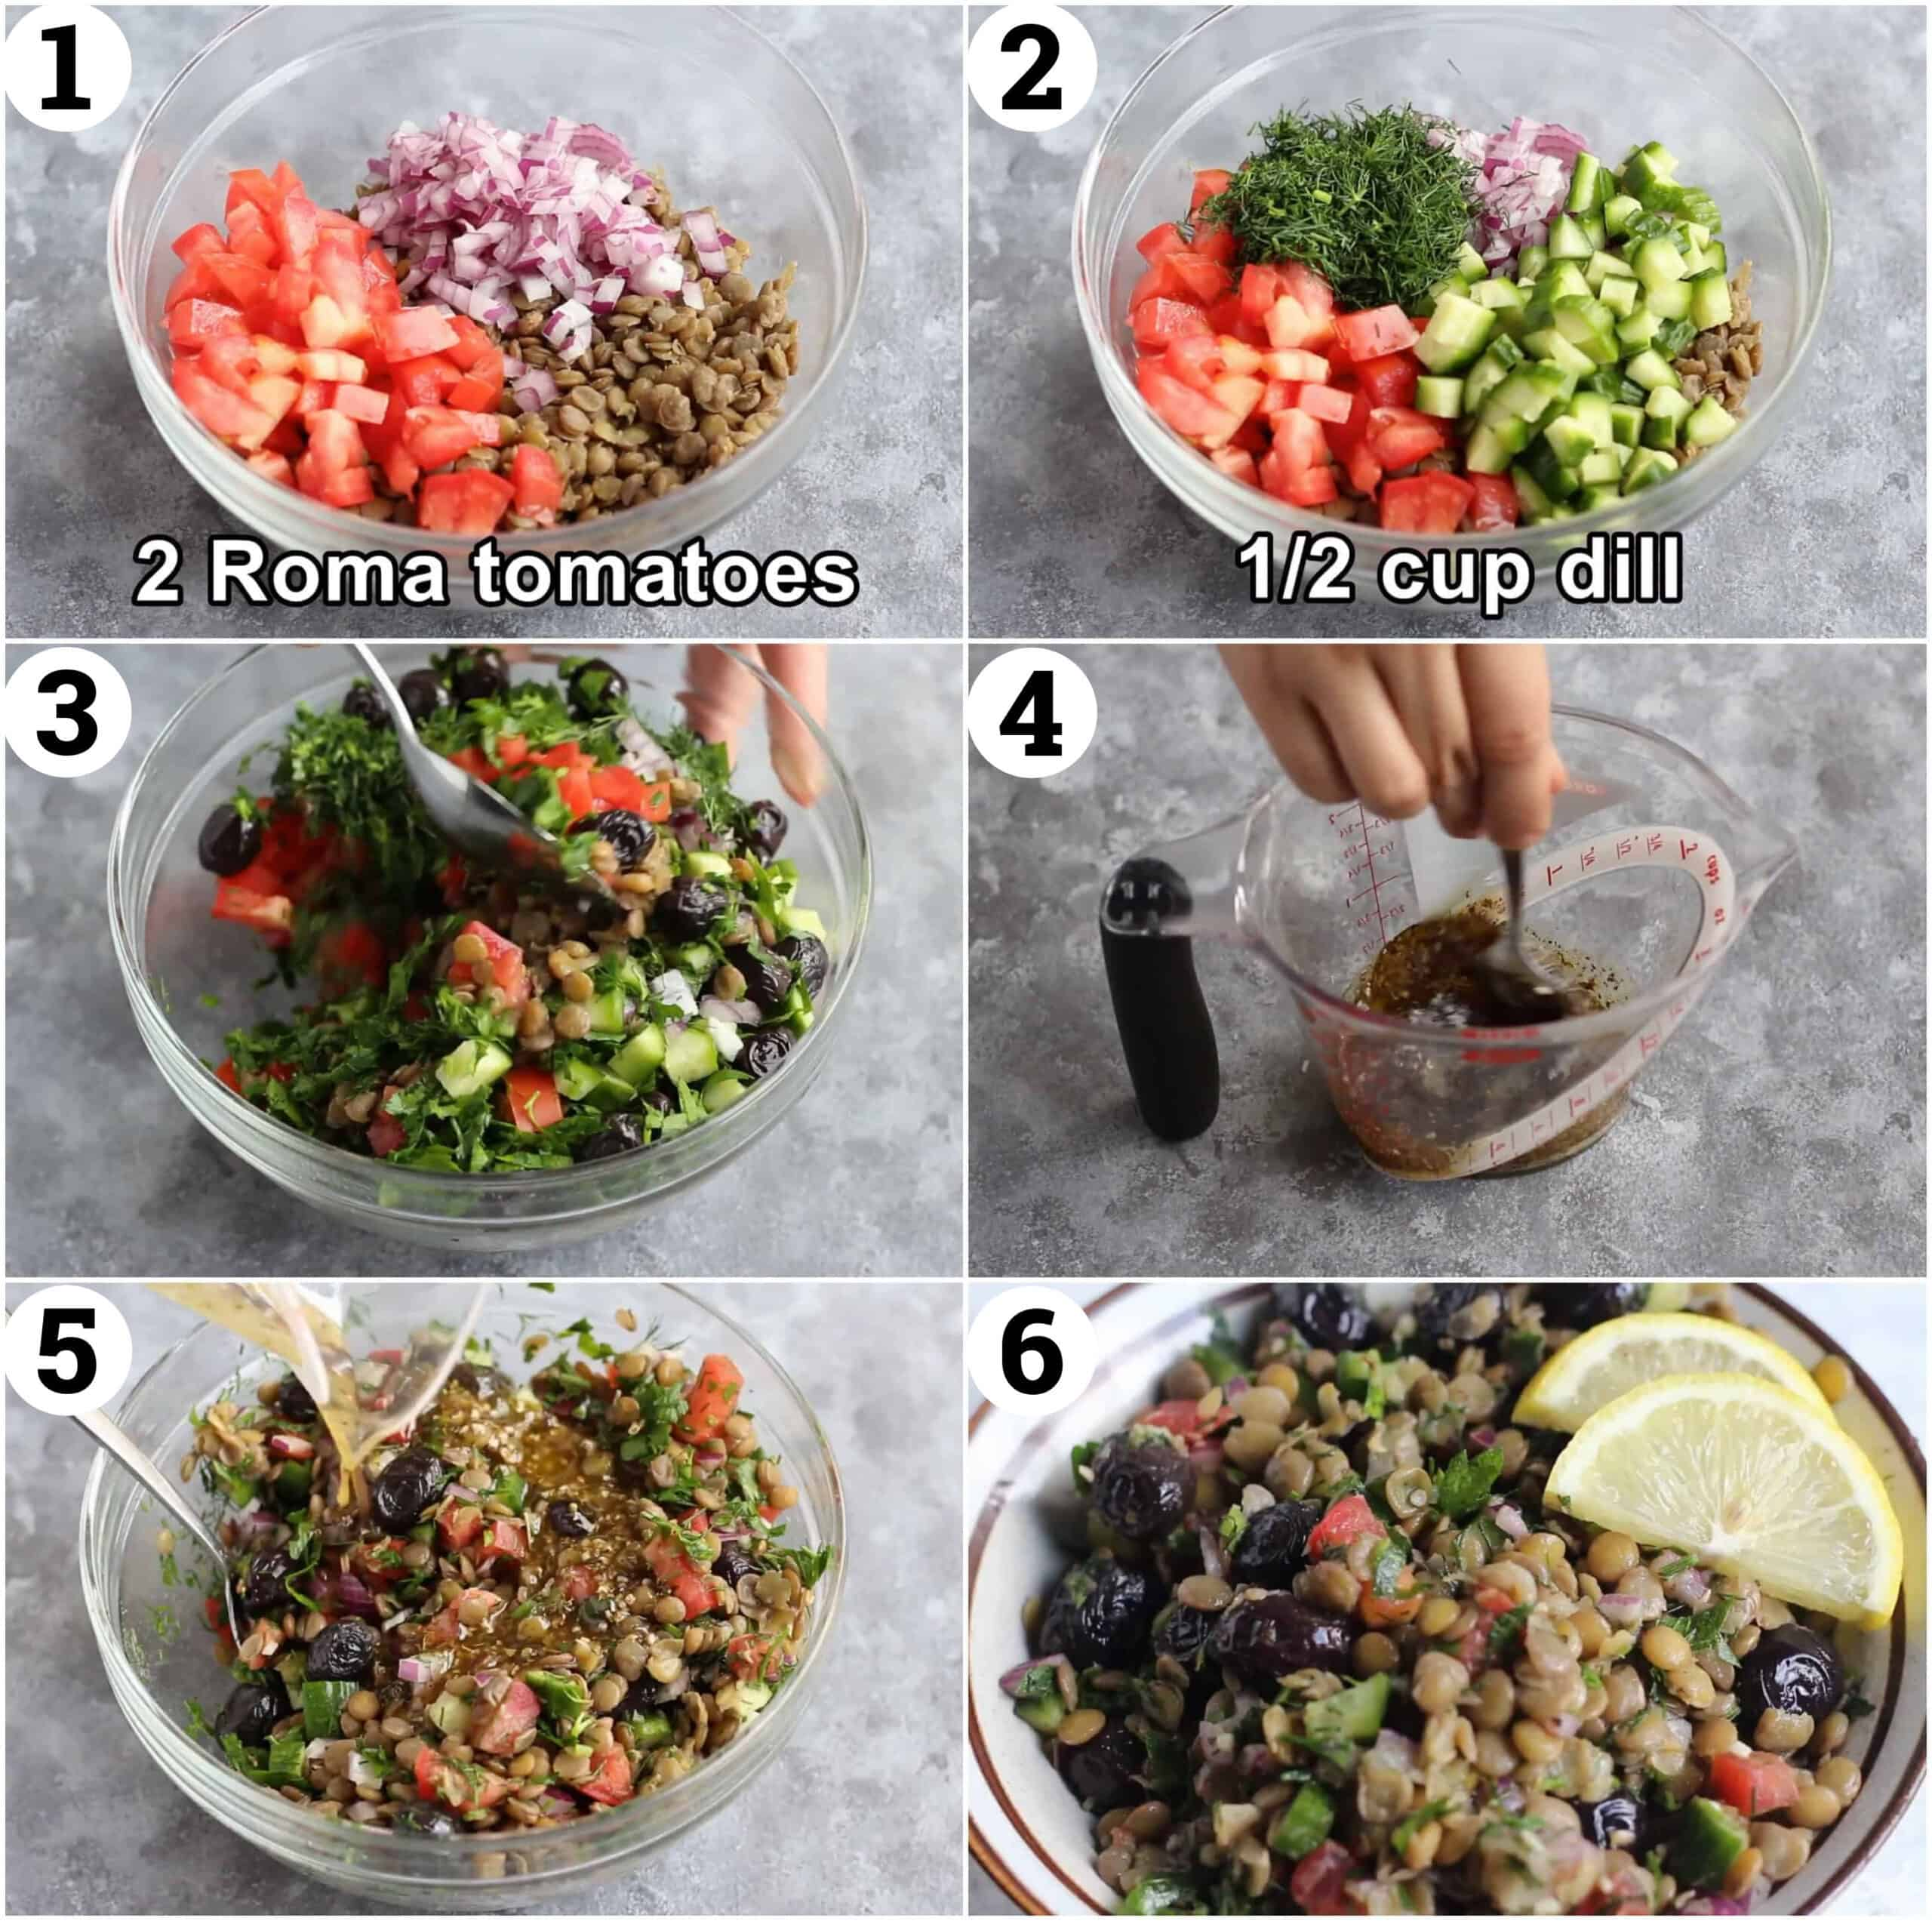 Cook the lentils then add tomatoes and onions. Add dill and cucumbers and toss. Make the dressing and pour over the salad.